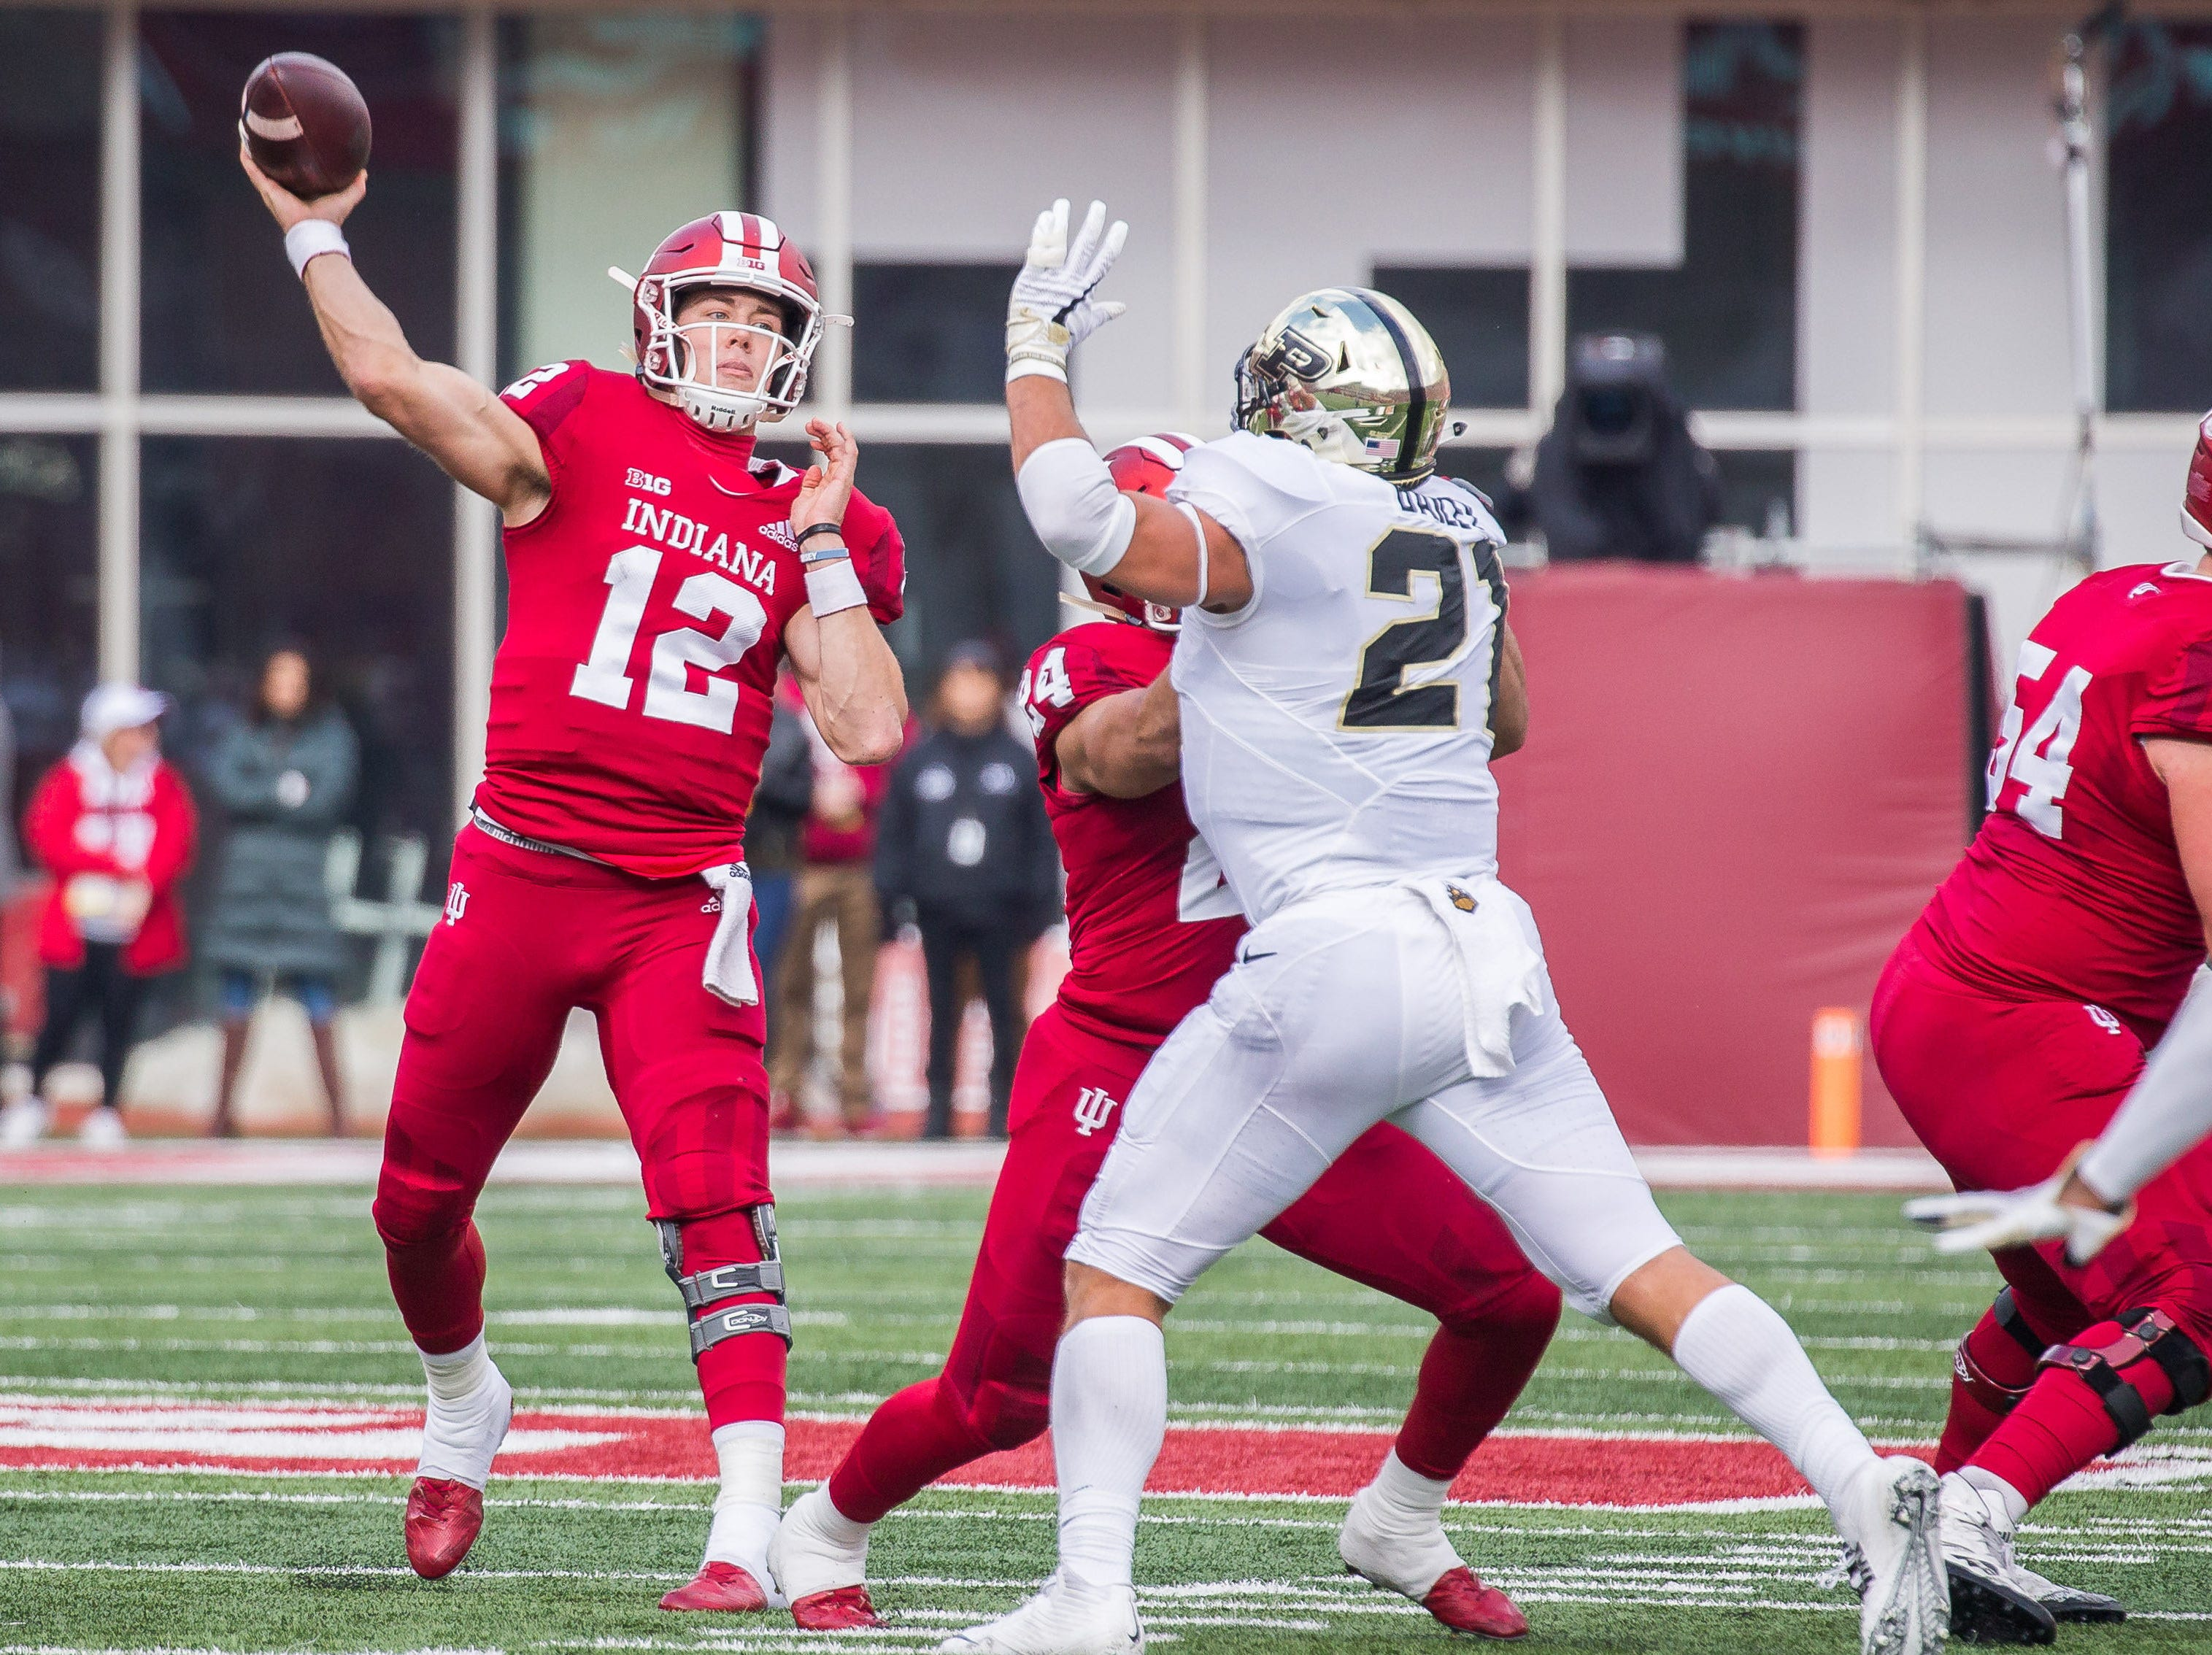 Indiana Hoosiers quarterback Peyton Ramsey (12) passes the ball in the second quarter against the Purdue Boilermakers at Memorial Stadium.